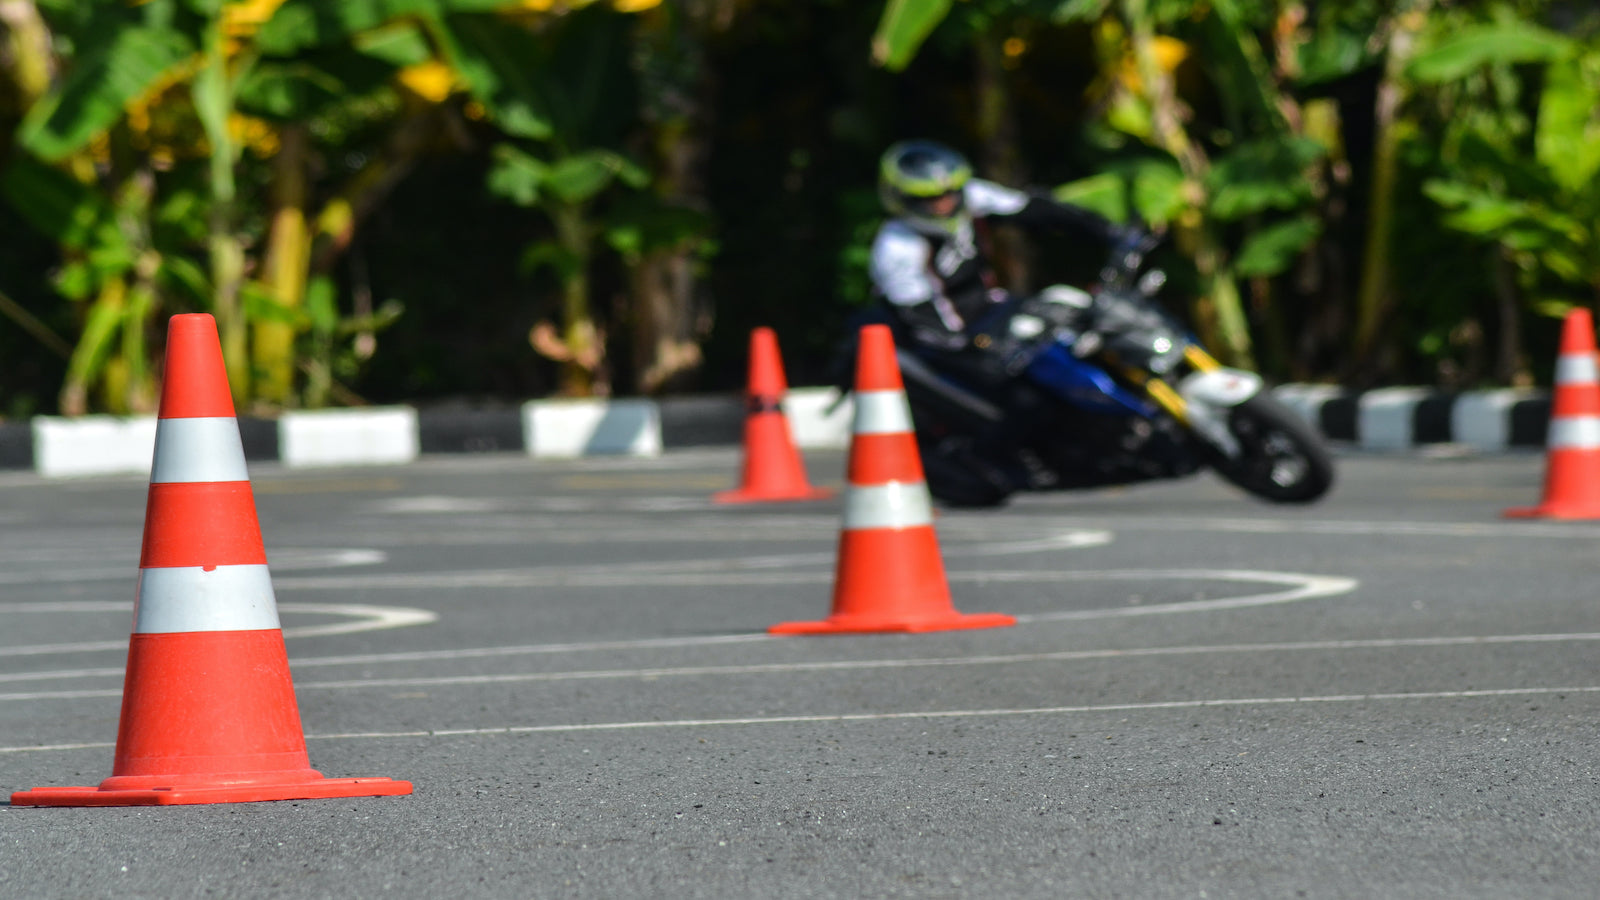 Motorcycle Safety Course 301 - Training is a Journey, Not a Destination